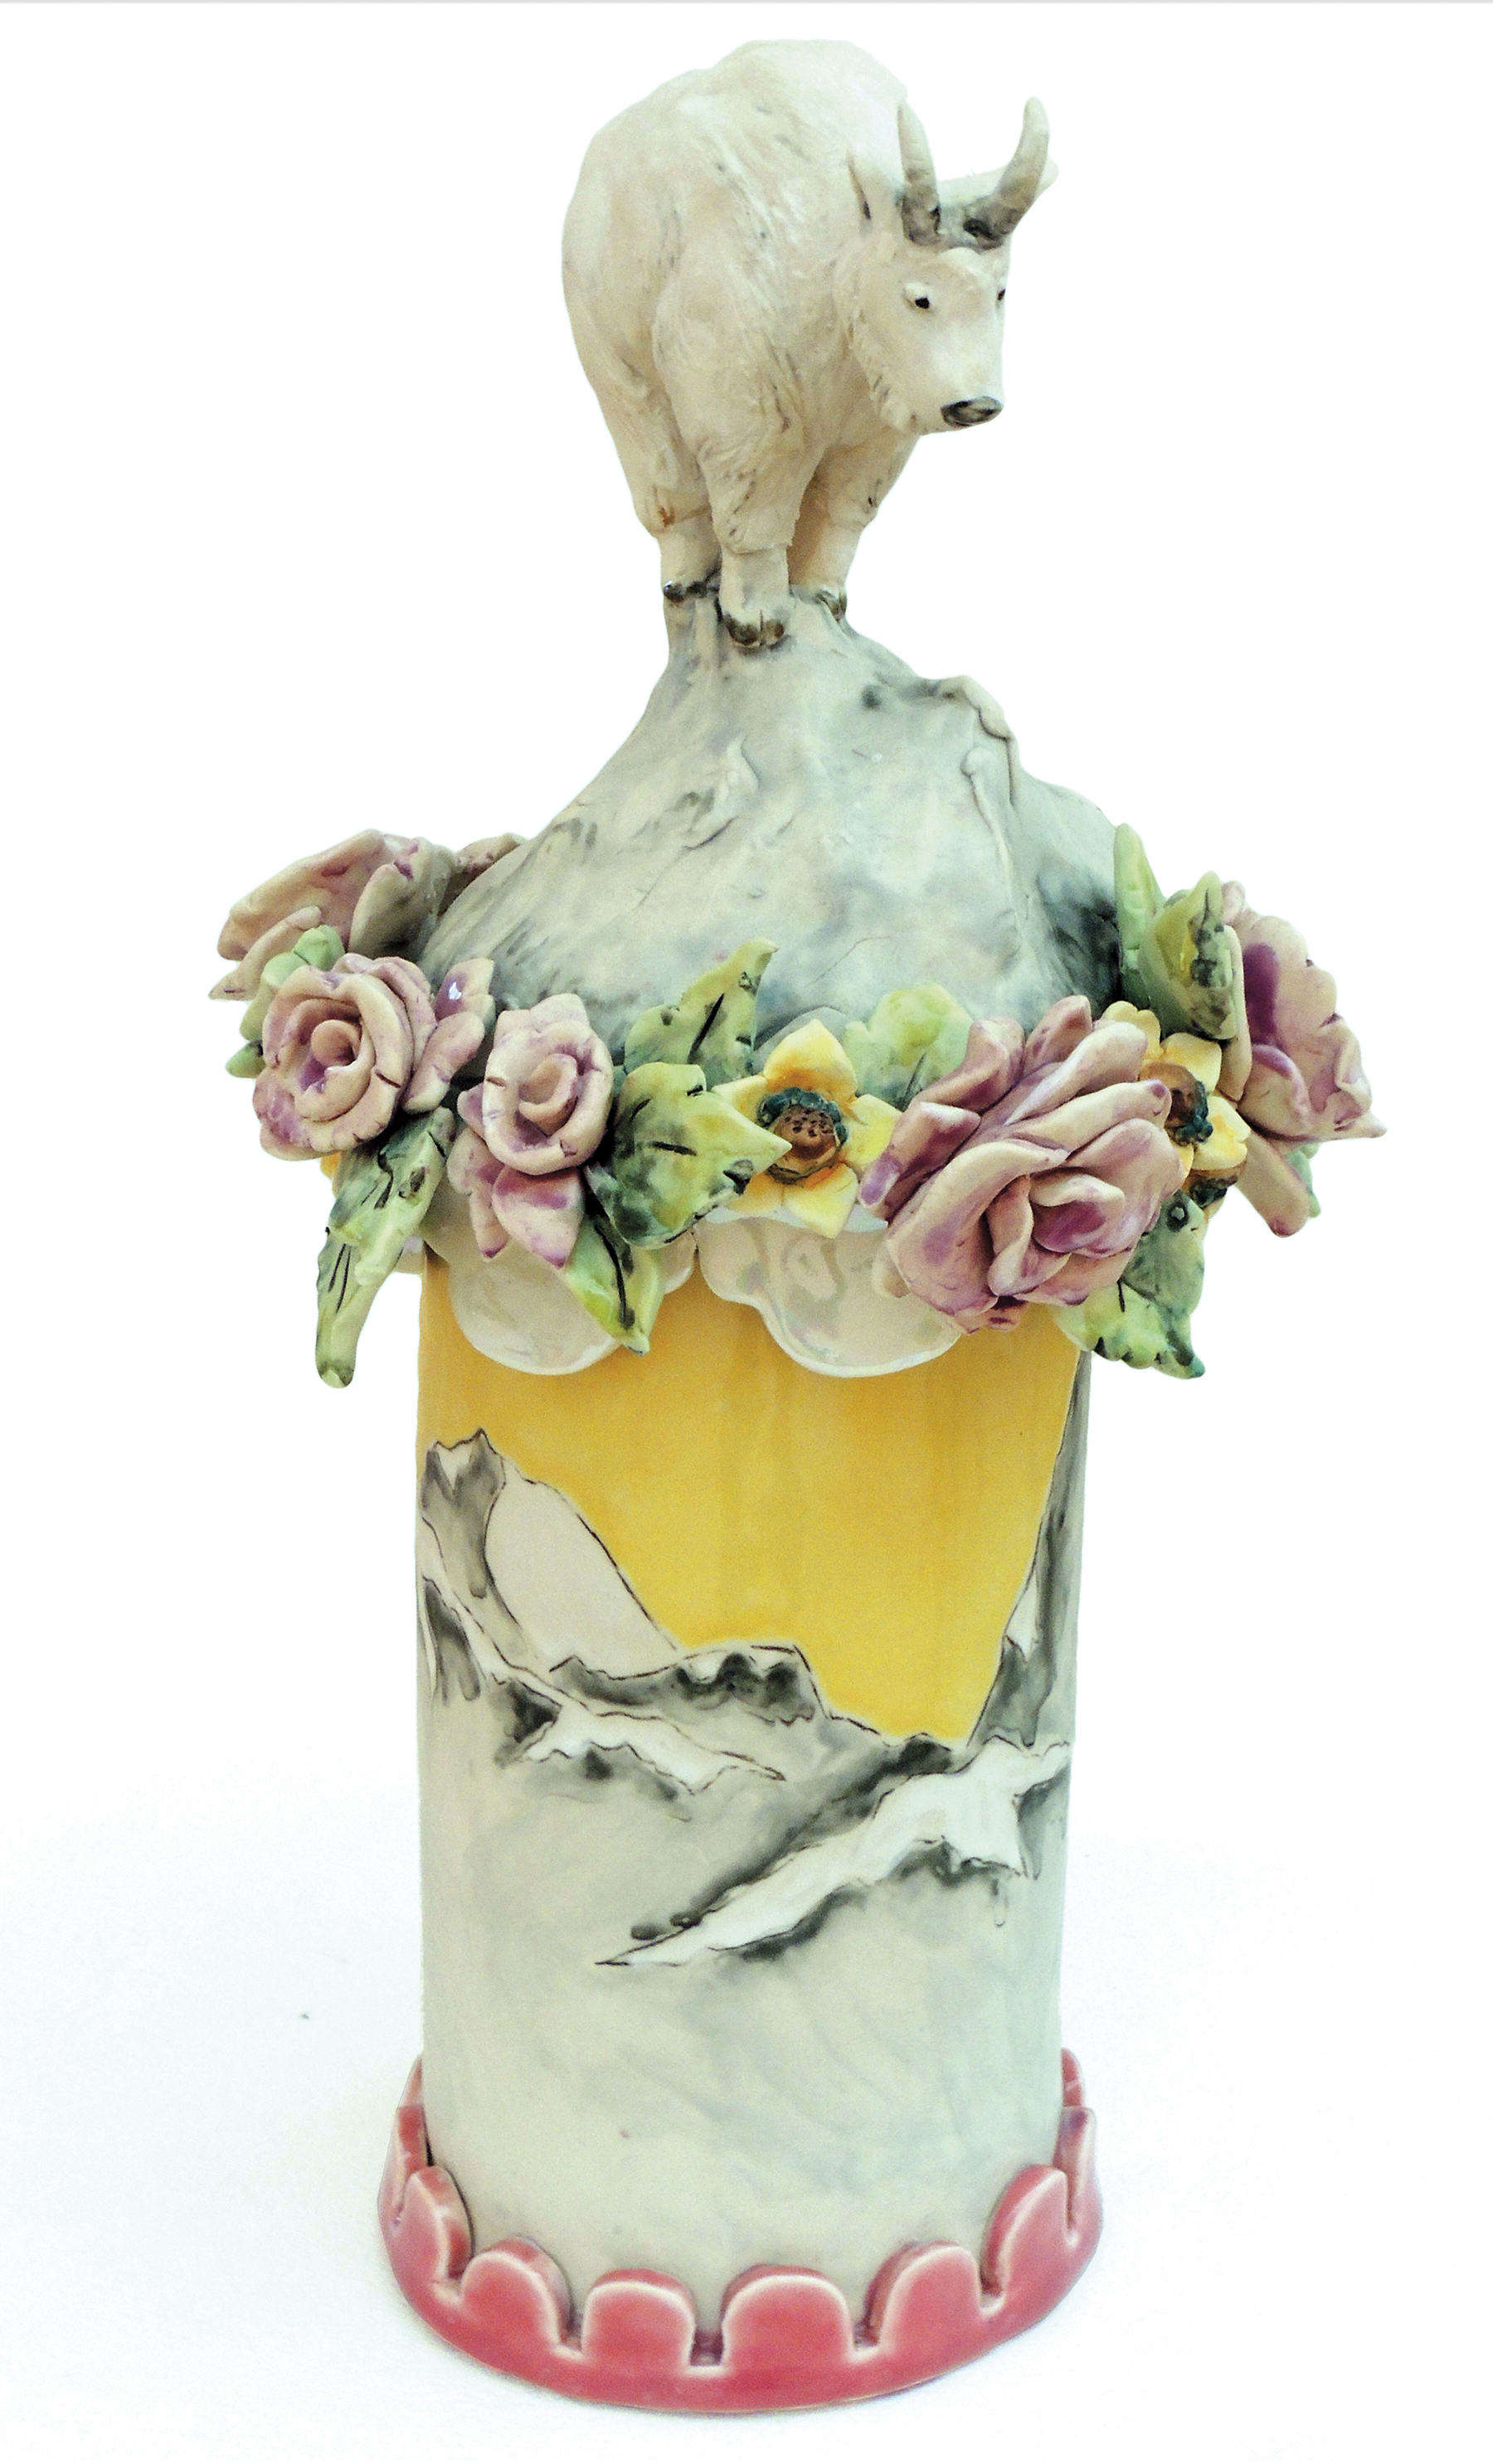 Carolyn Baginski | NOWHERE TO GO | glazed porcelain |  Honorable Mention